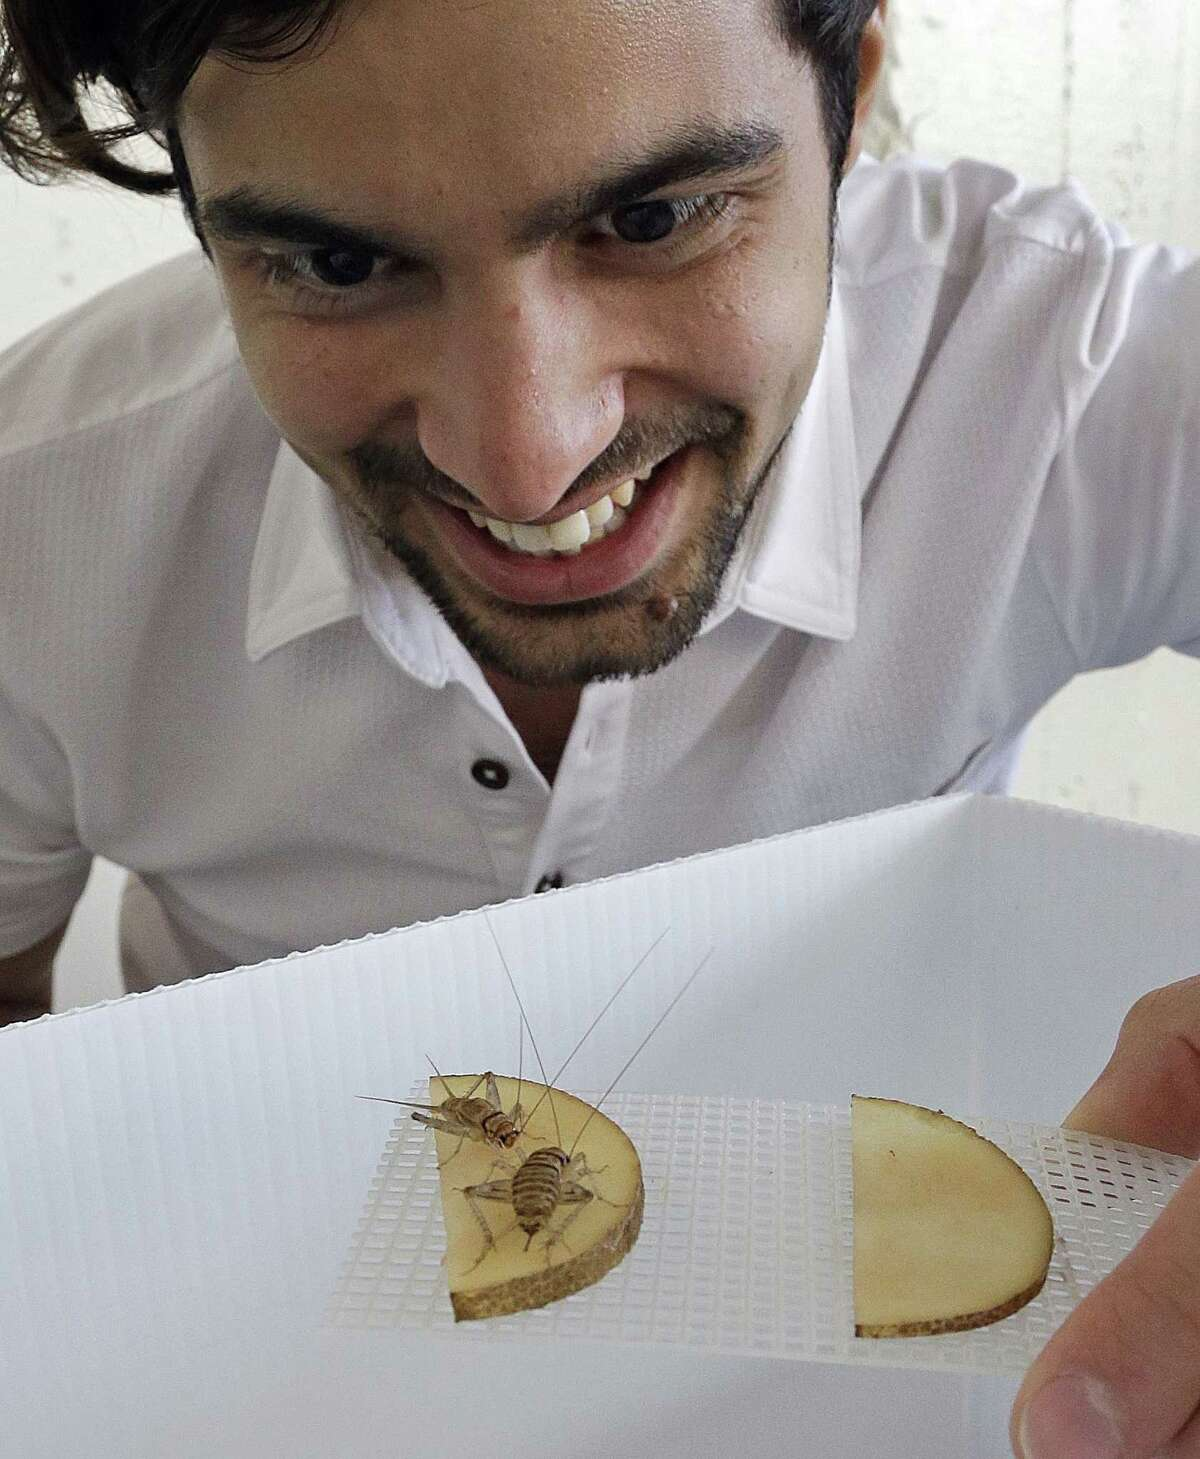 Daniel Imrie-Situnayake inspects a pair of banded crickets retrieving moisture from a sliced potato in an experimental cricket habitat in Oakland, Calif.